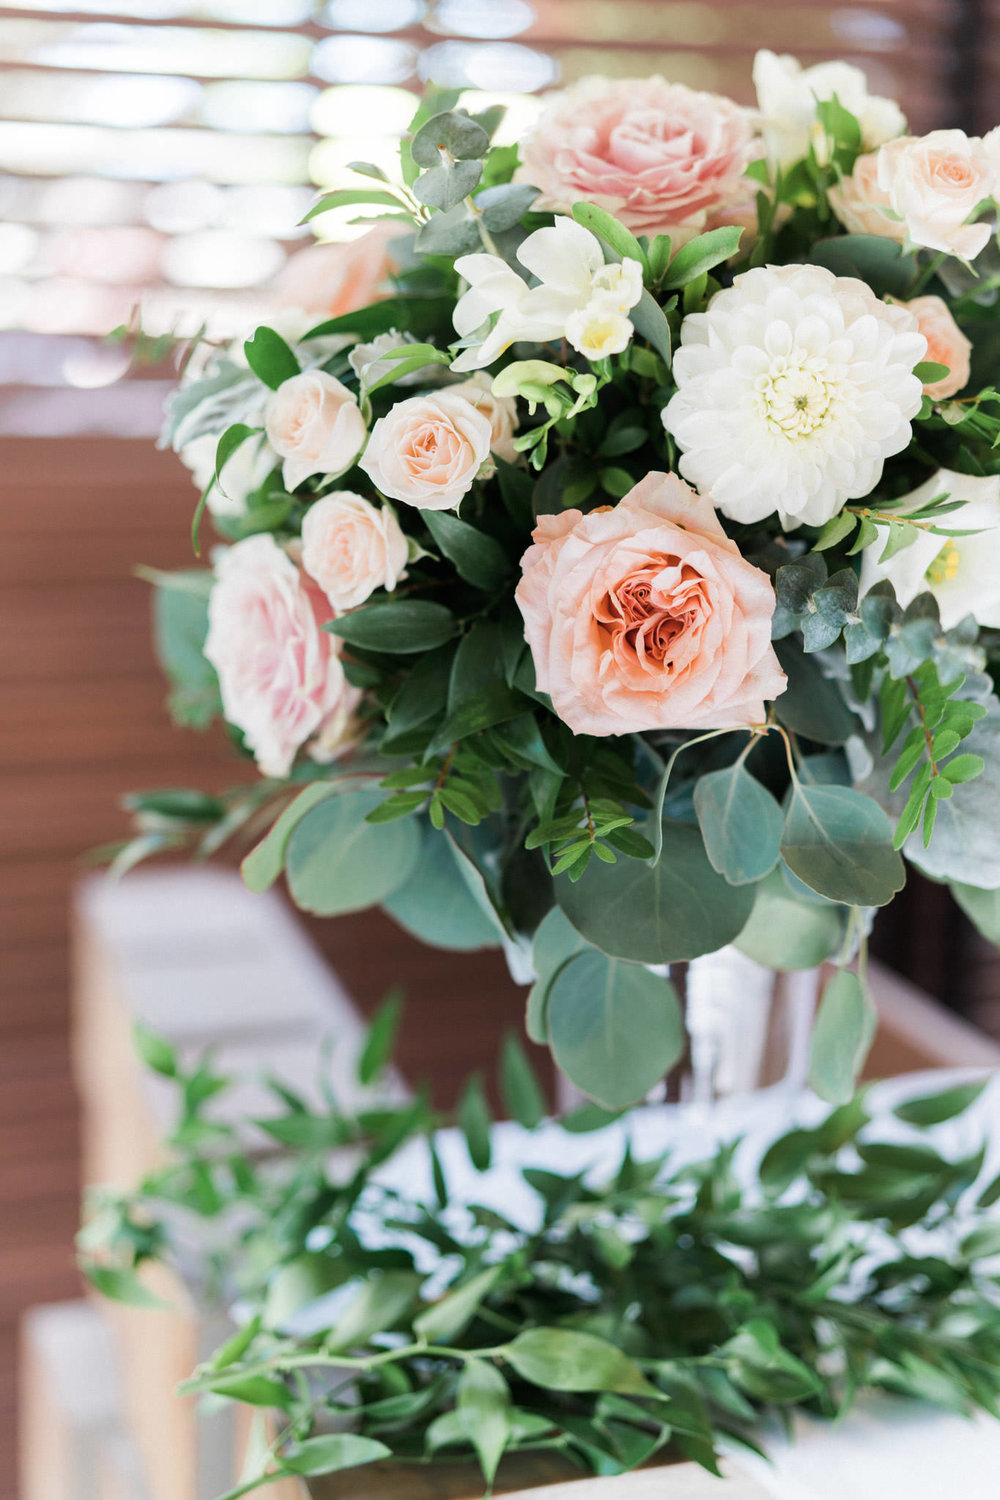 Thomas Hobbs wedding flowers